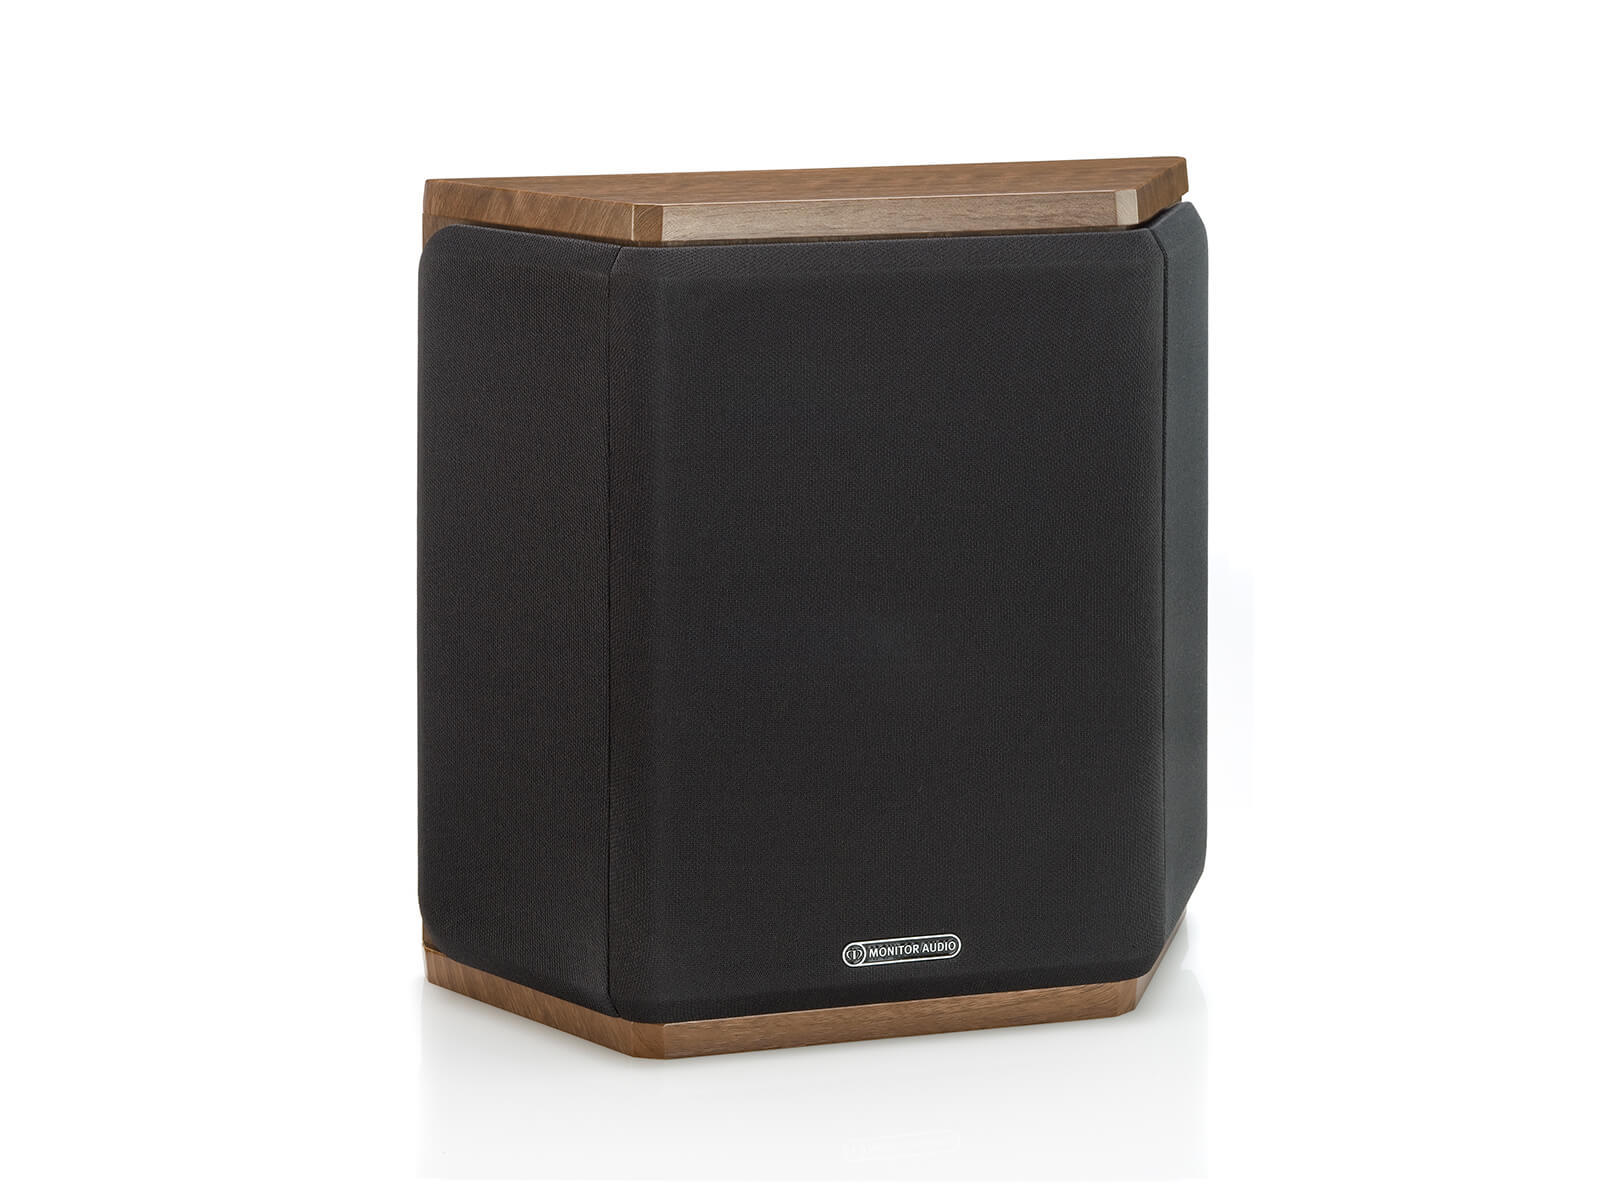 Bronze FX, surround speakers, featuring a grille and a walnut vinyl finish.